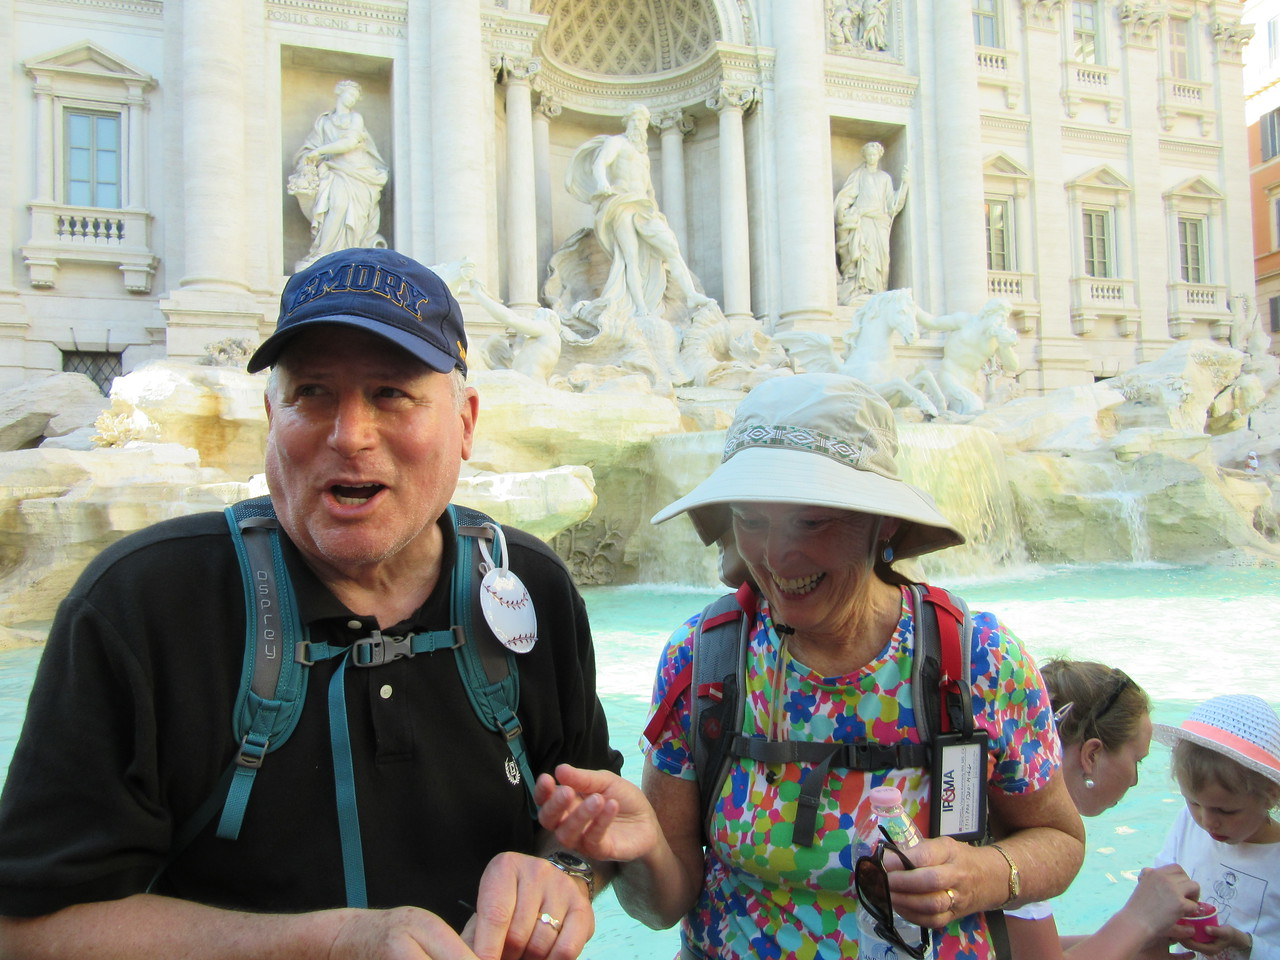 Coin toss into the Trevi Fountain for good luck.